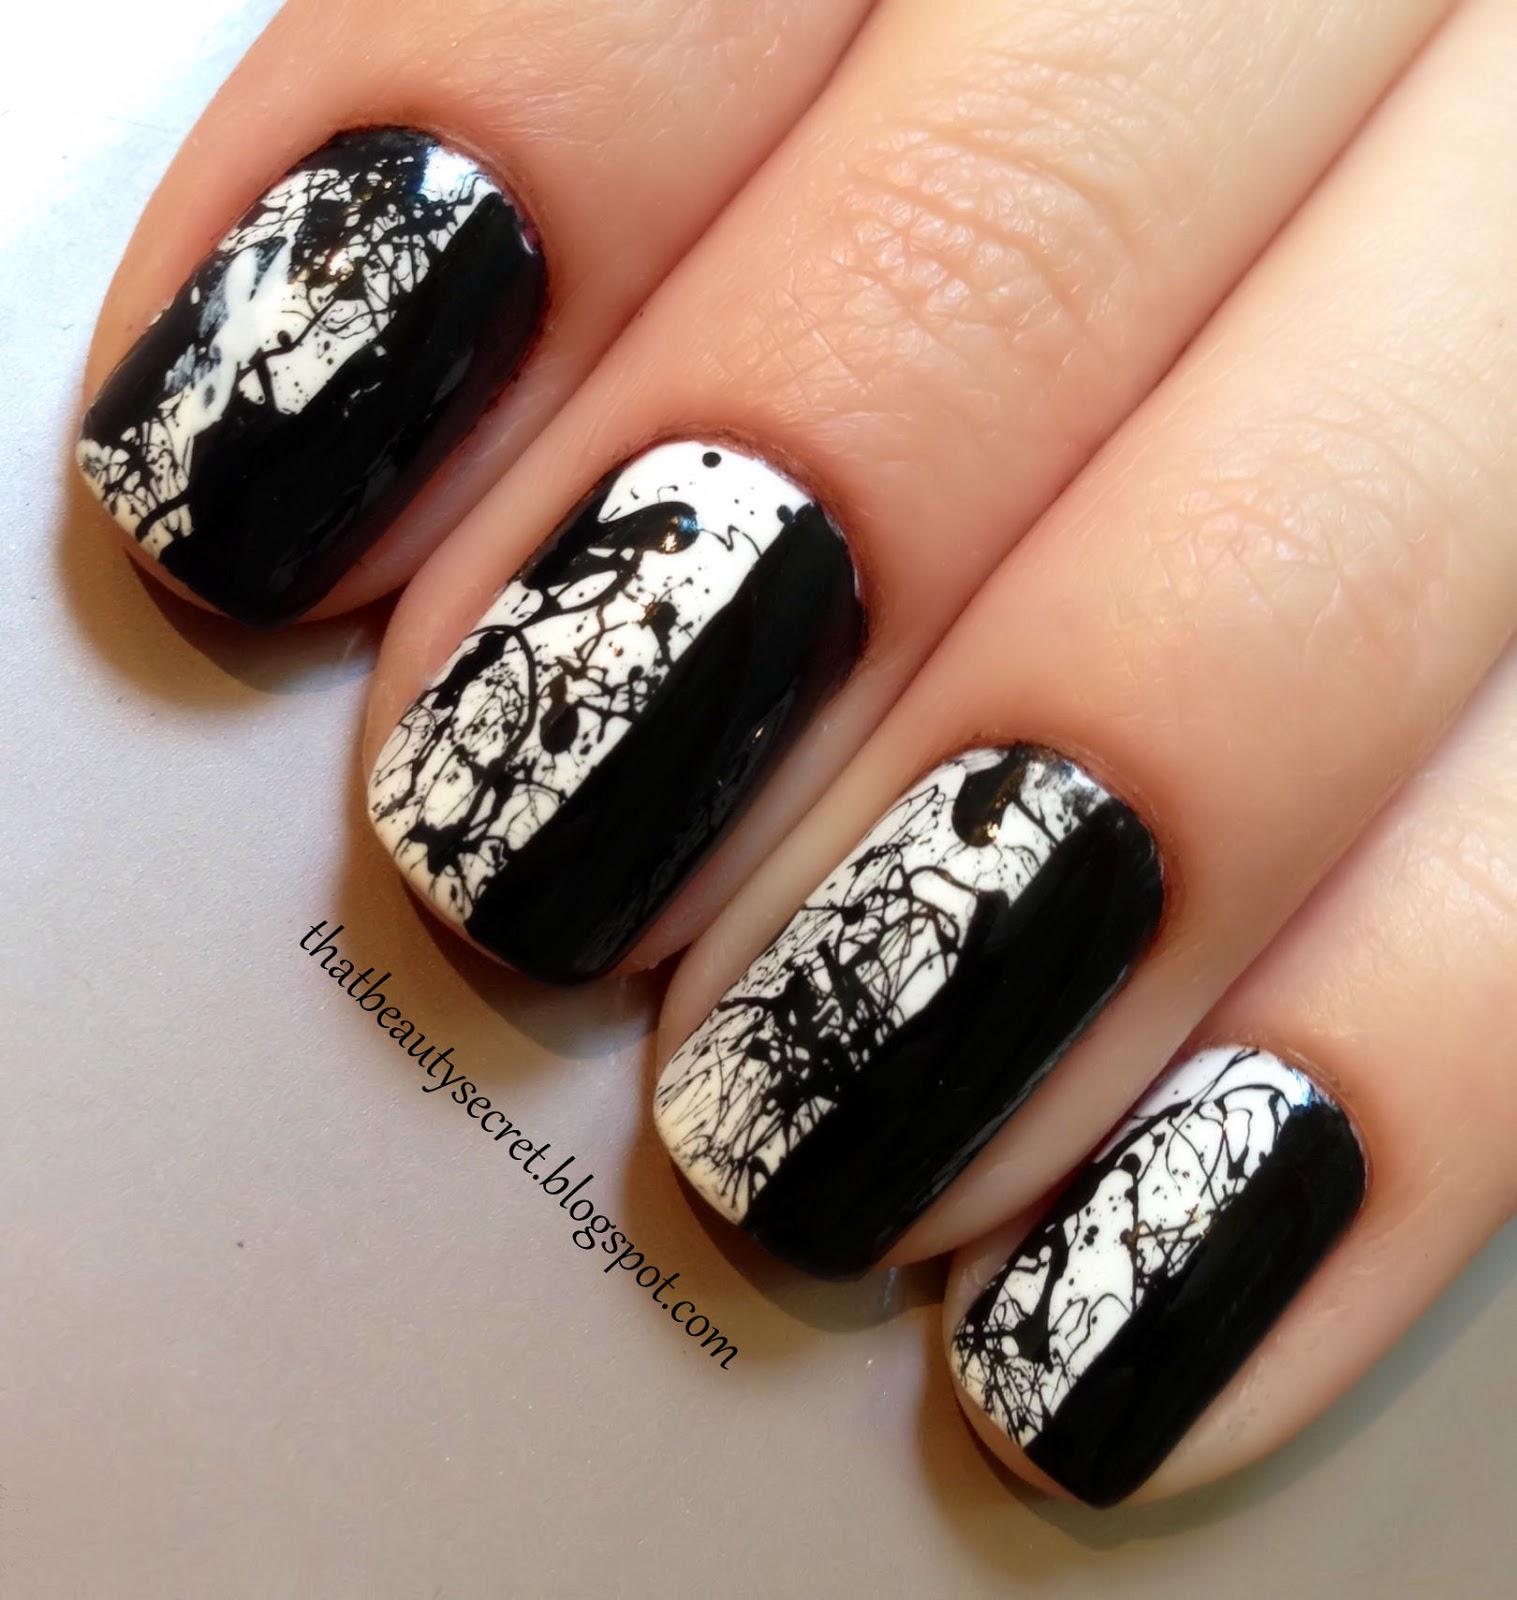 That beauty secret mani monday monochrome splatter this week i created a monochrome nail design with splatter this nail look may take a bit of patience and work but i think it was all worth it in the end prinsesfo Choice Image